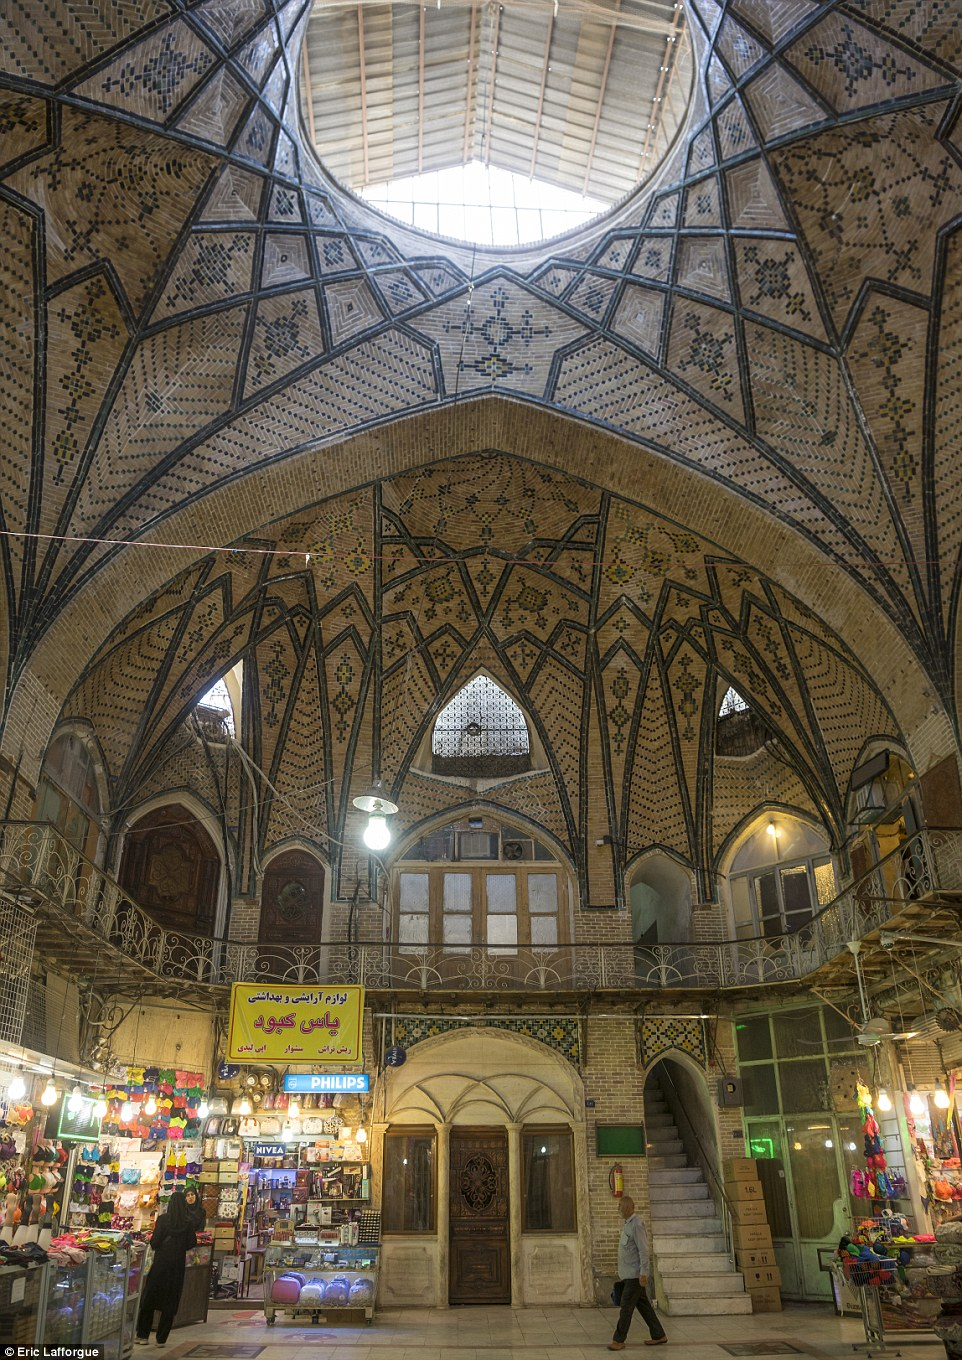 The Grand Bazaar Tehran is an old historical market in the capital that is split into several corridors over six miles in length, each specialising in different types of goods